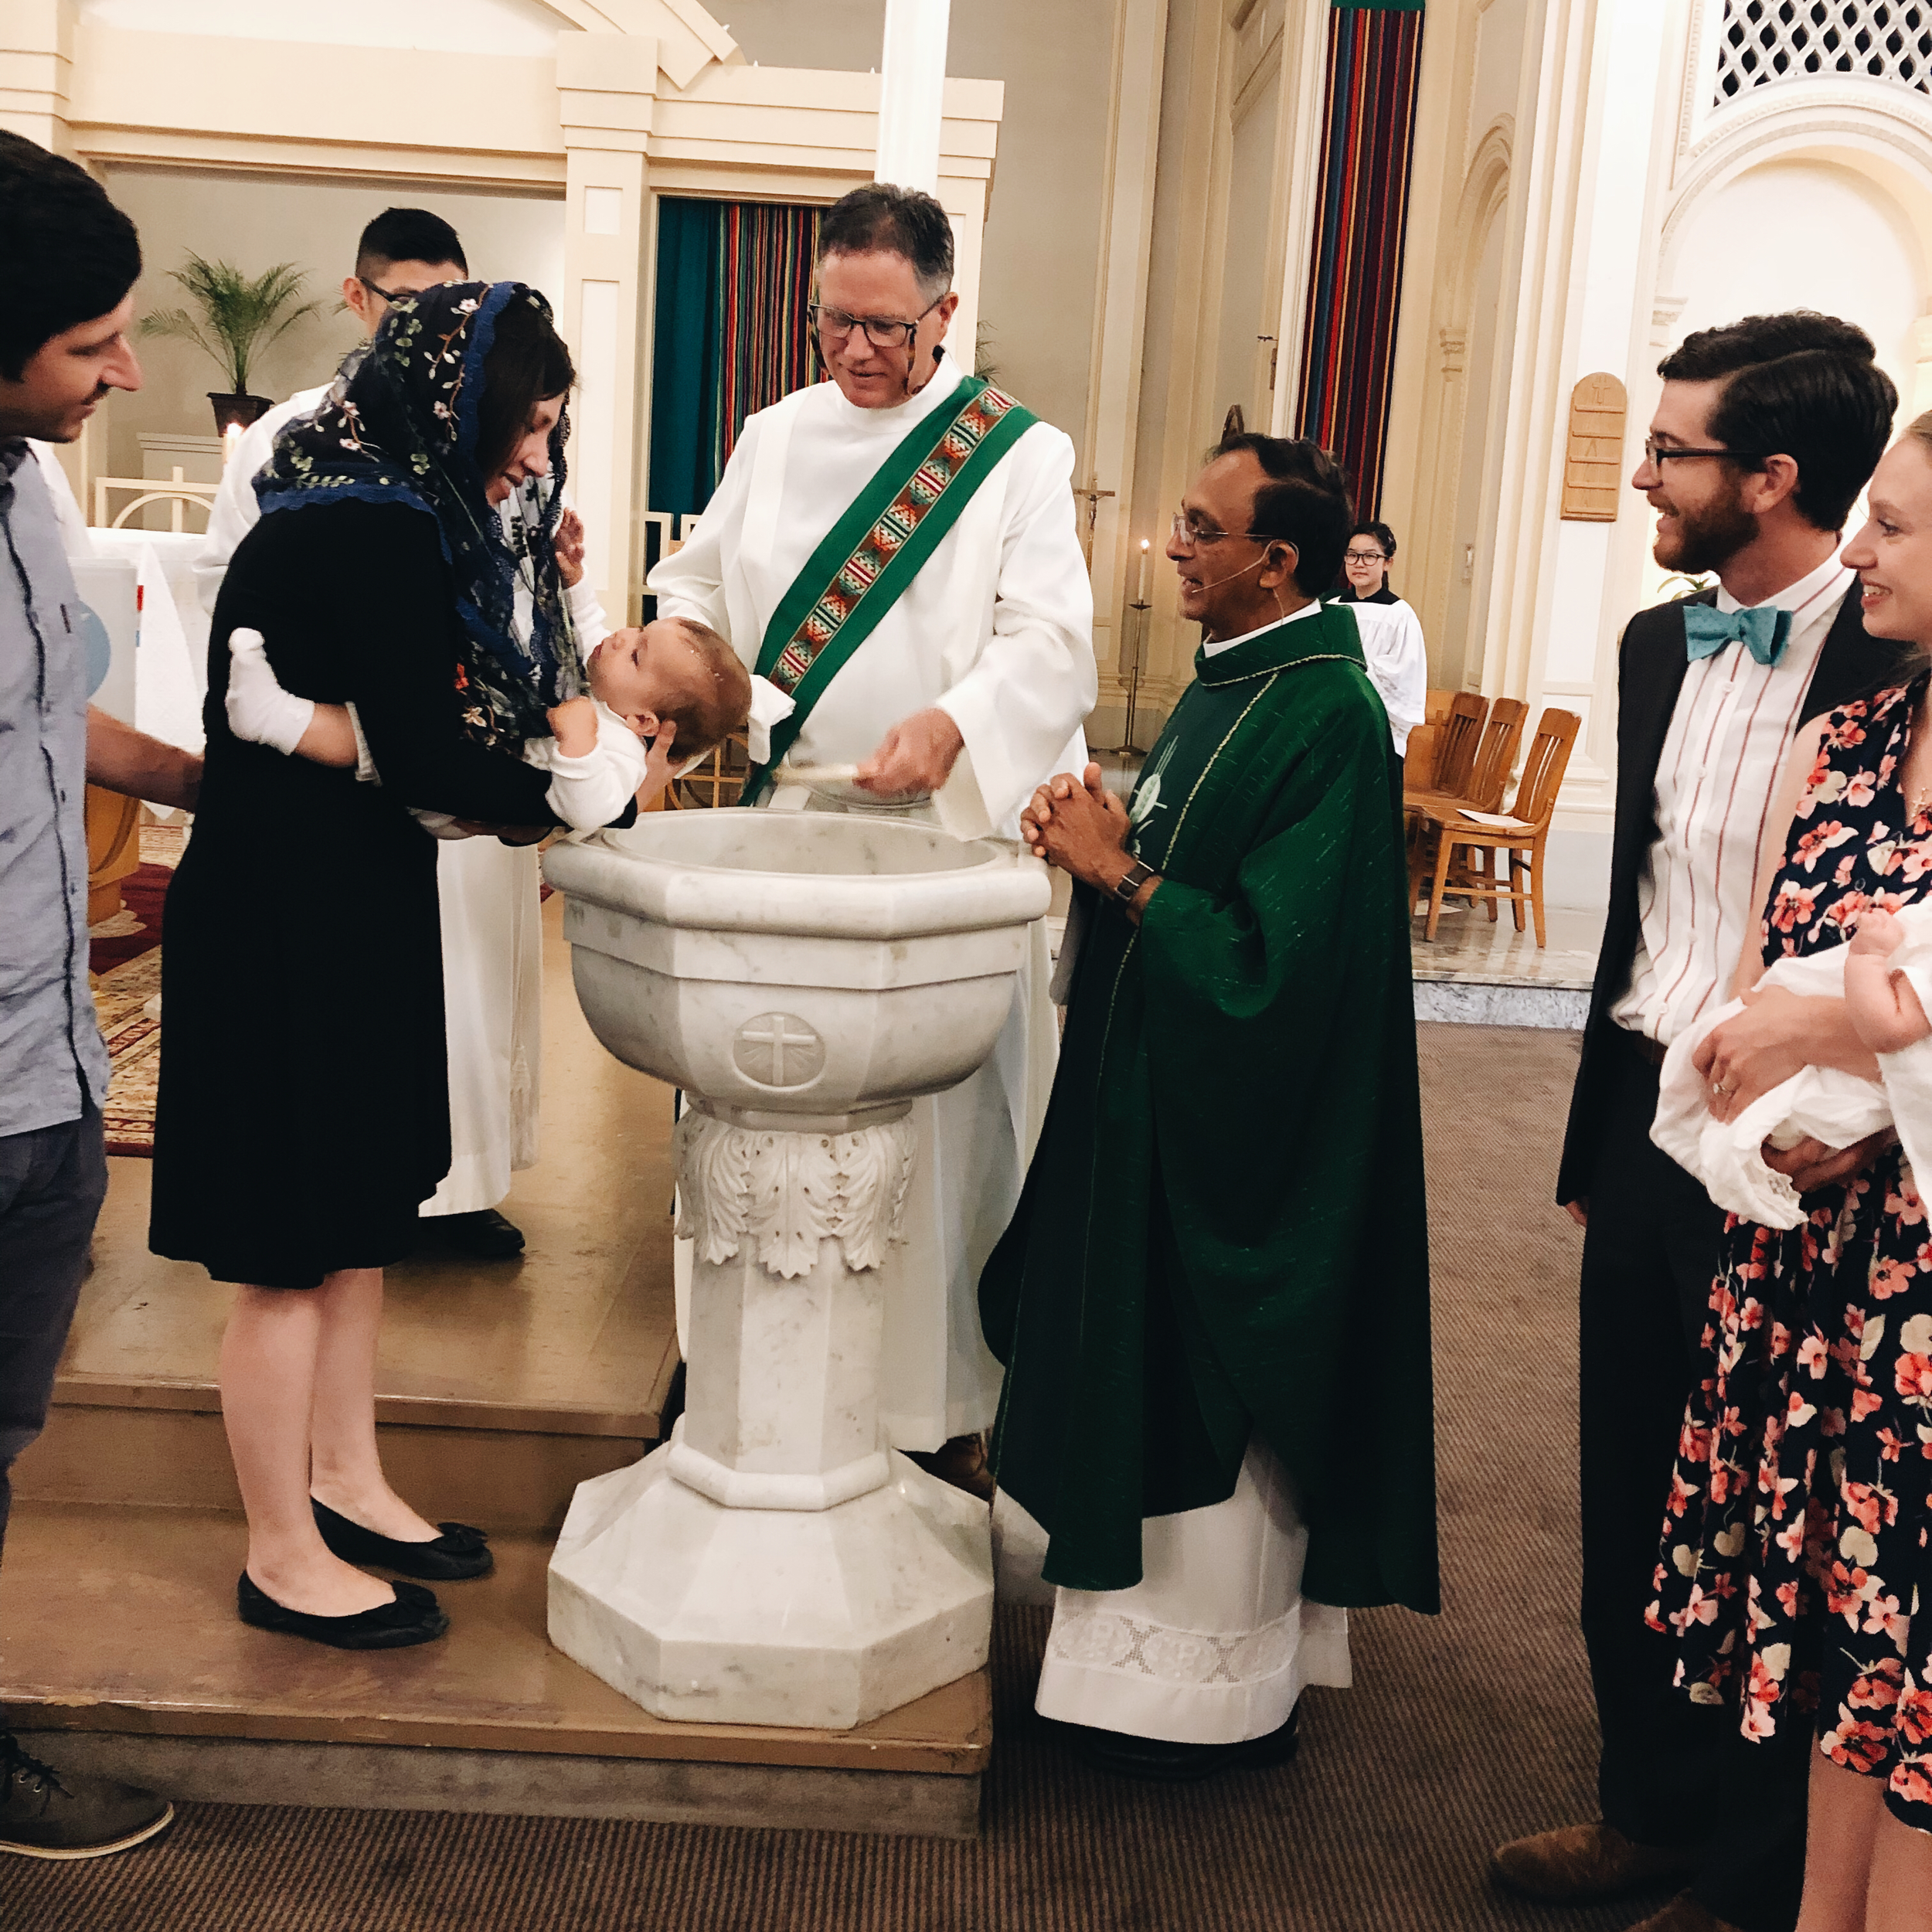 theo baptism 2.png